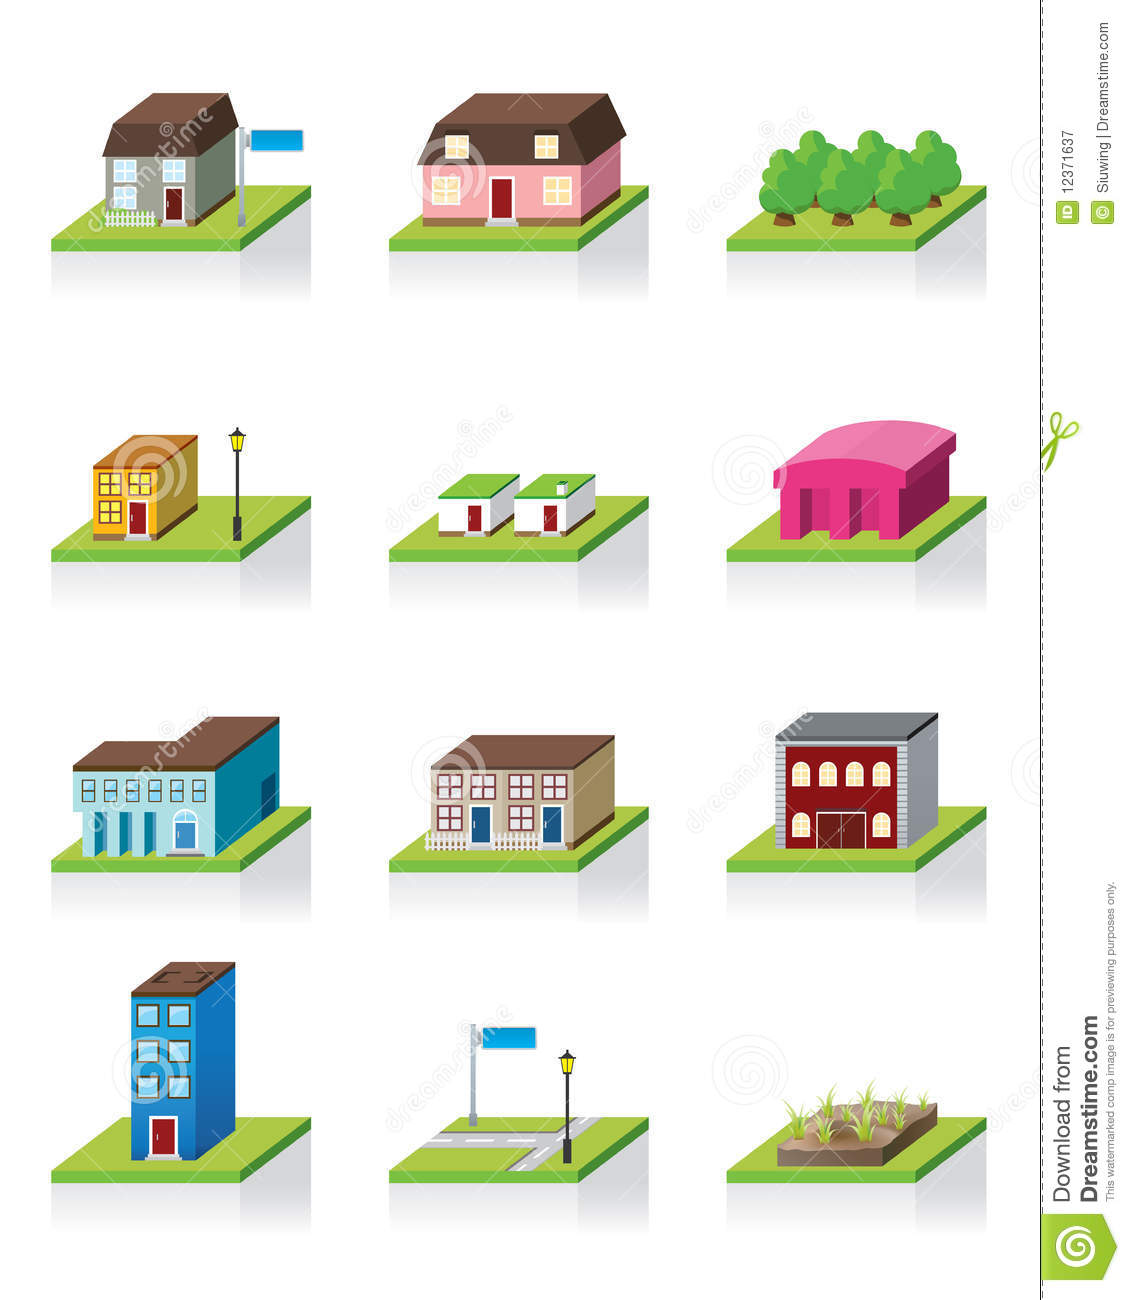 Vector building icon 3d illustration stock vector for Build house online 3d free